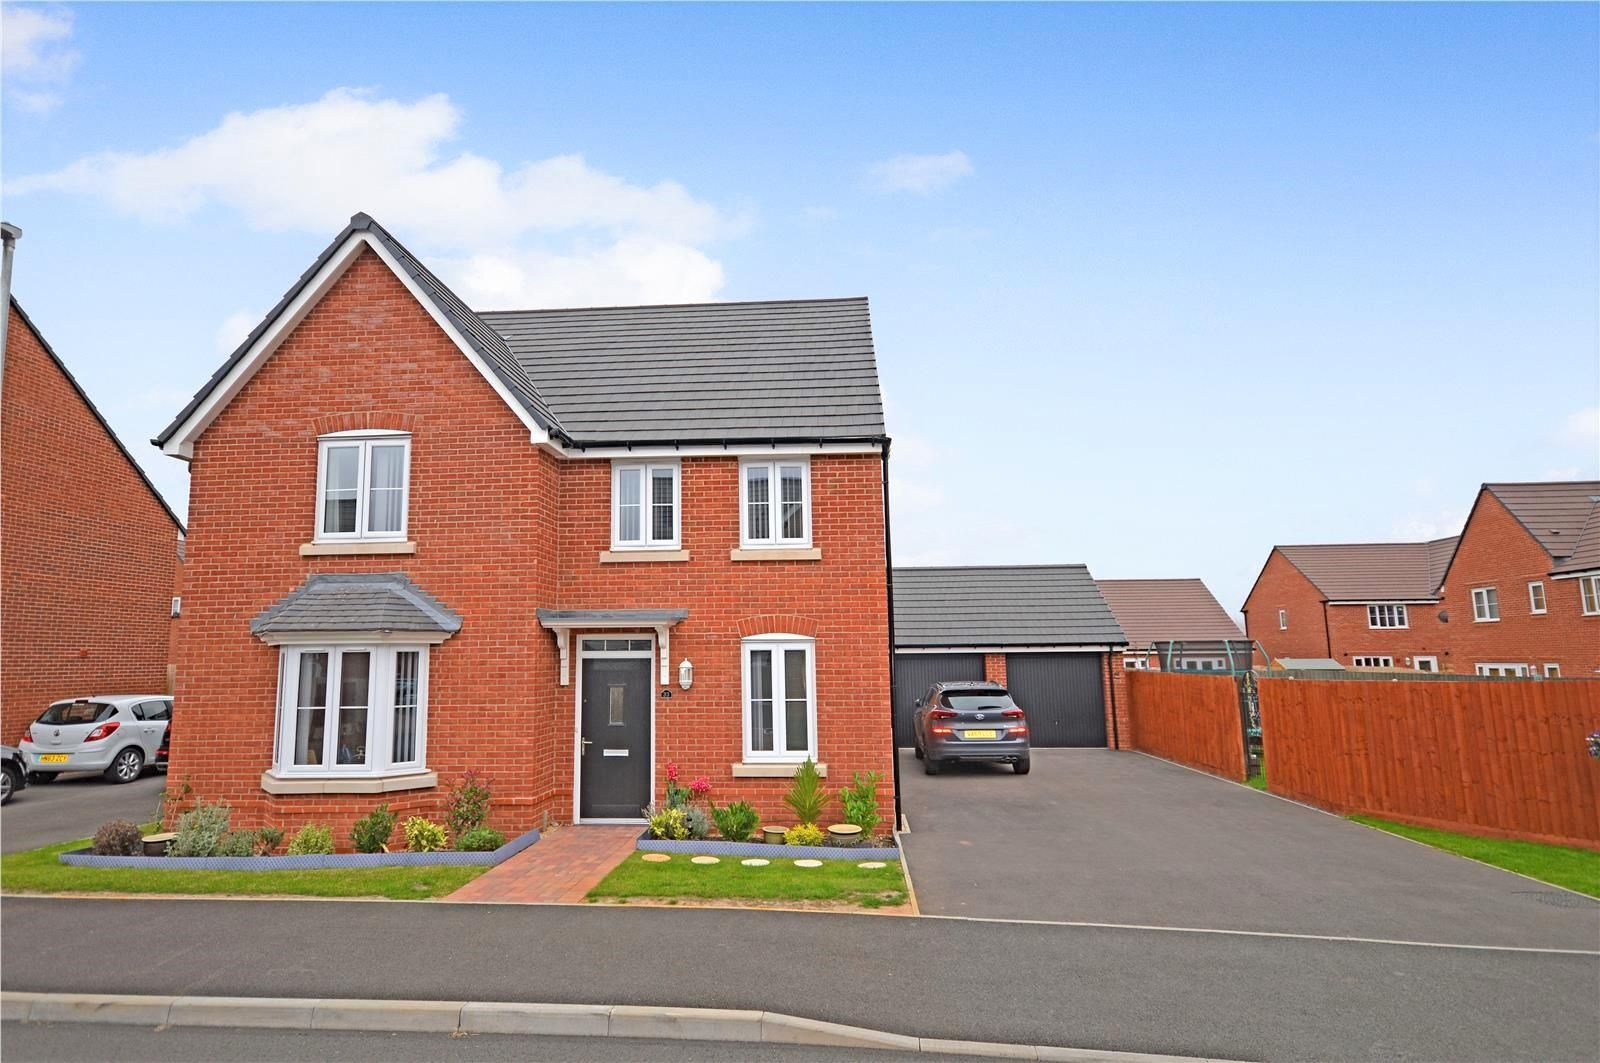 4 bed detached for sale in Whitestone, HR1